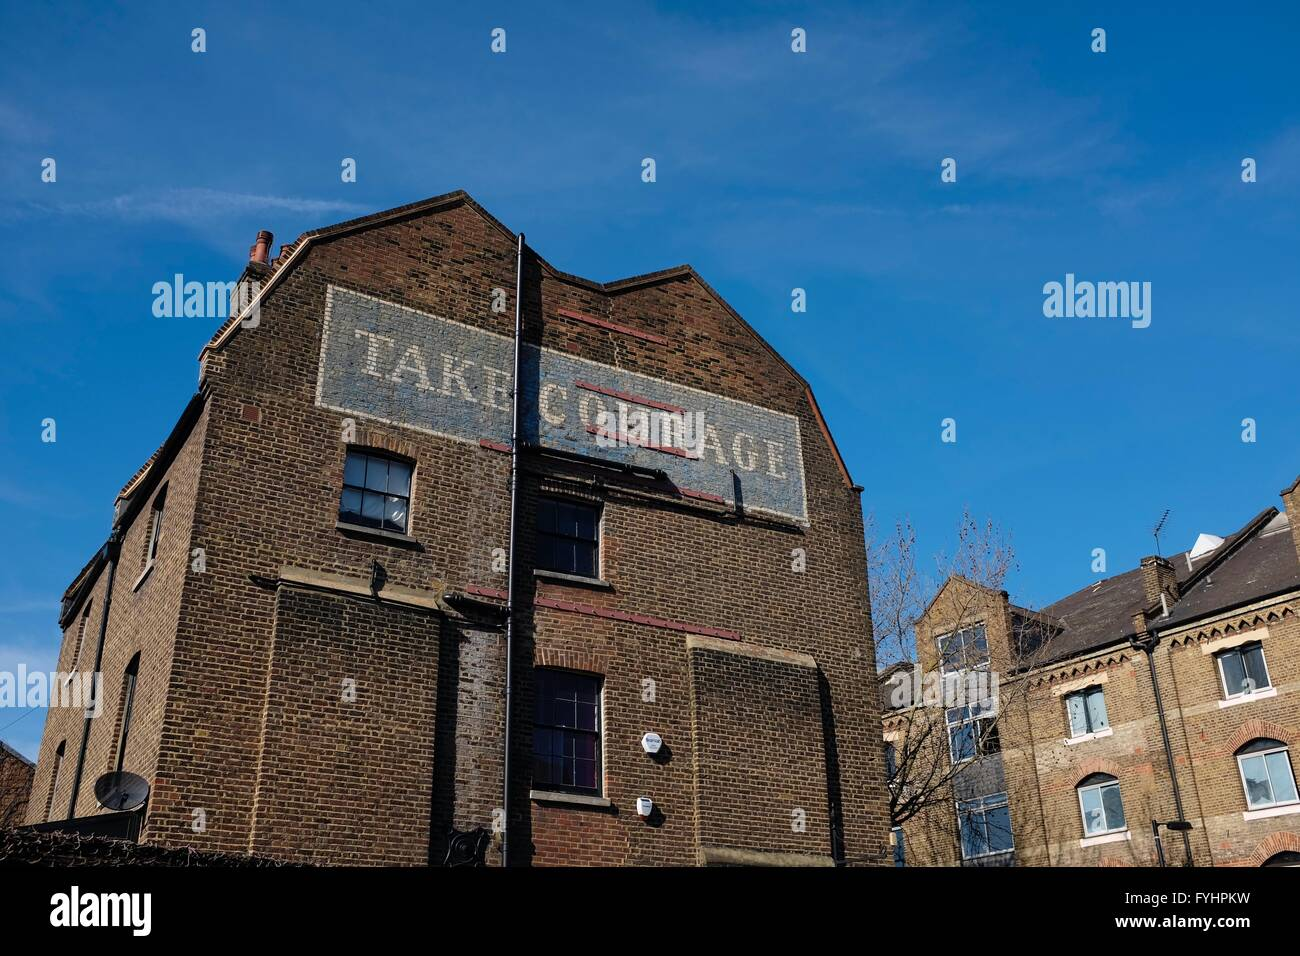 Take Courage Ghost Sign, Southwark, London - Stock Image